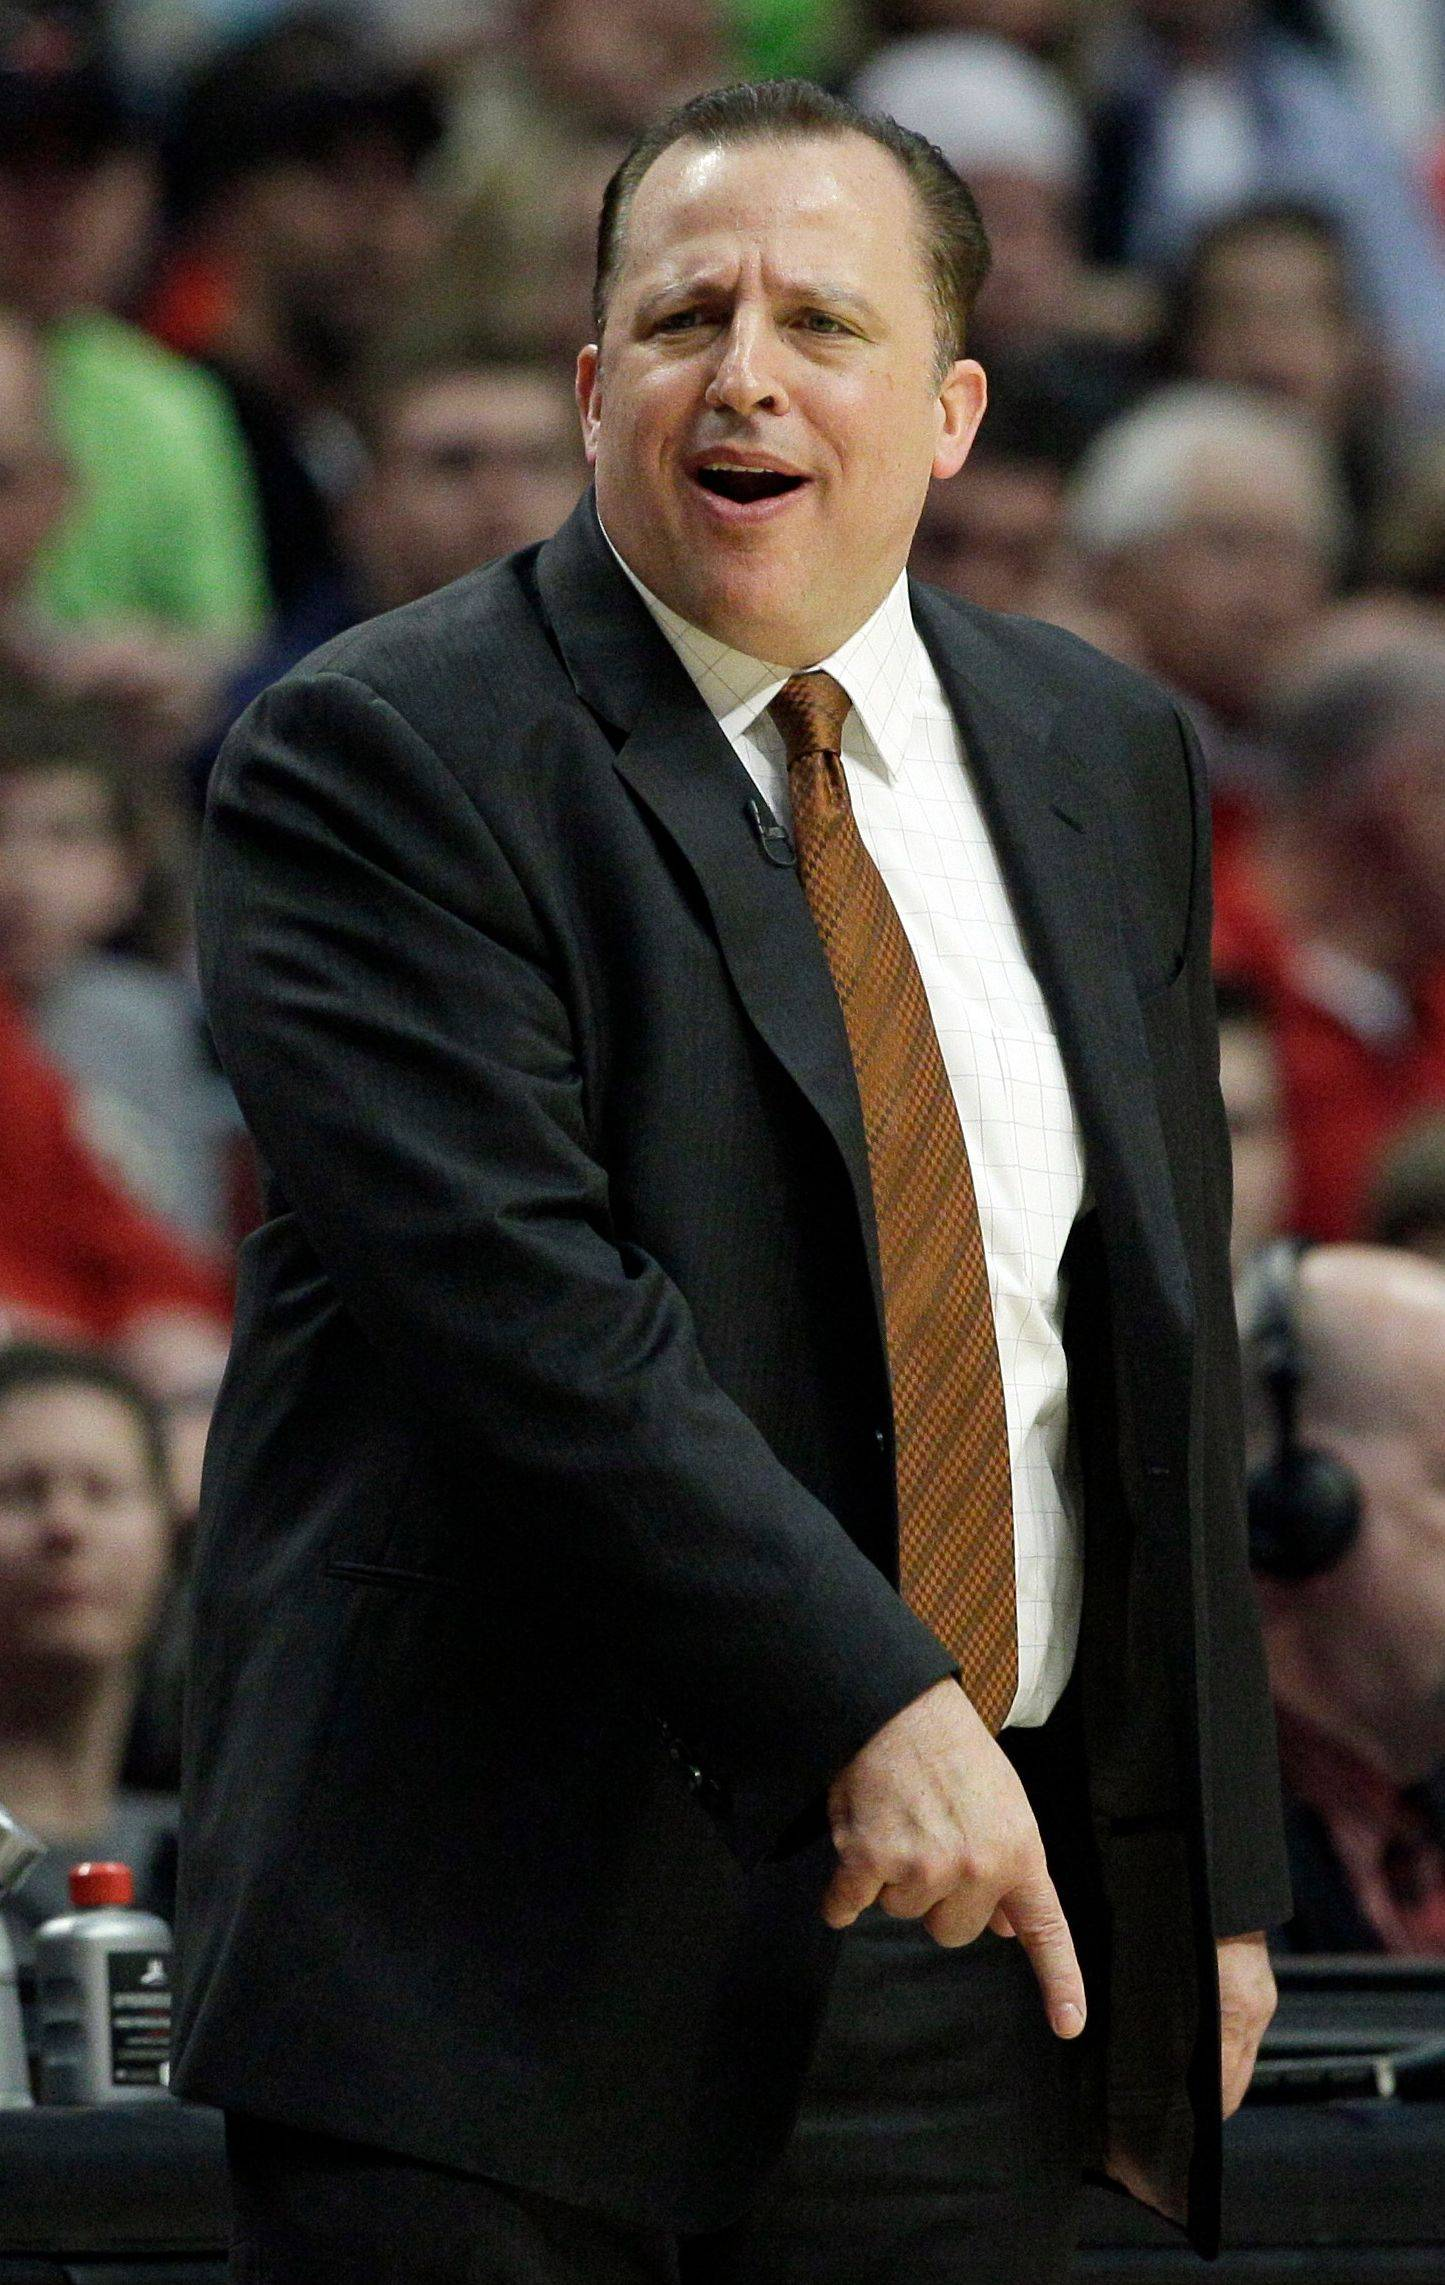 The Bulls' Tom Thibodeau could become the first coach in NBA history to win back-to-back Coach of the Year awards.